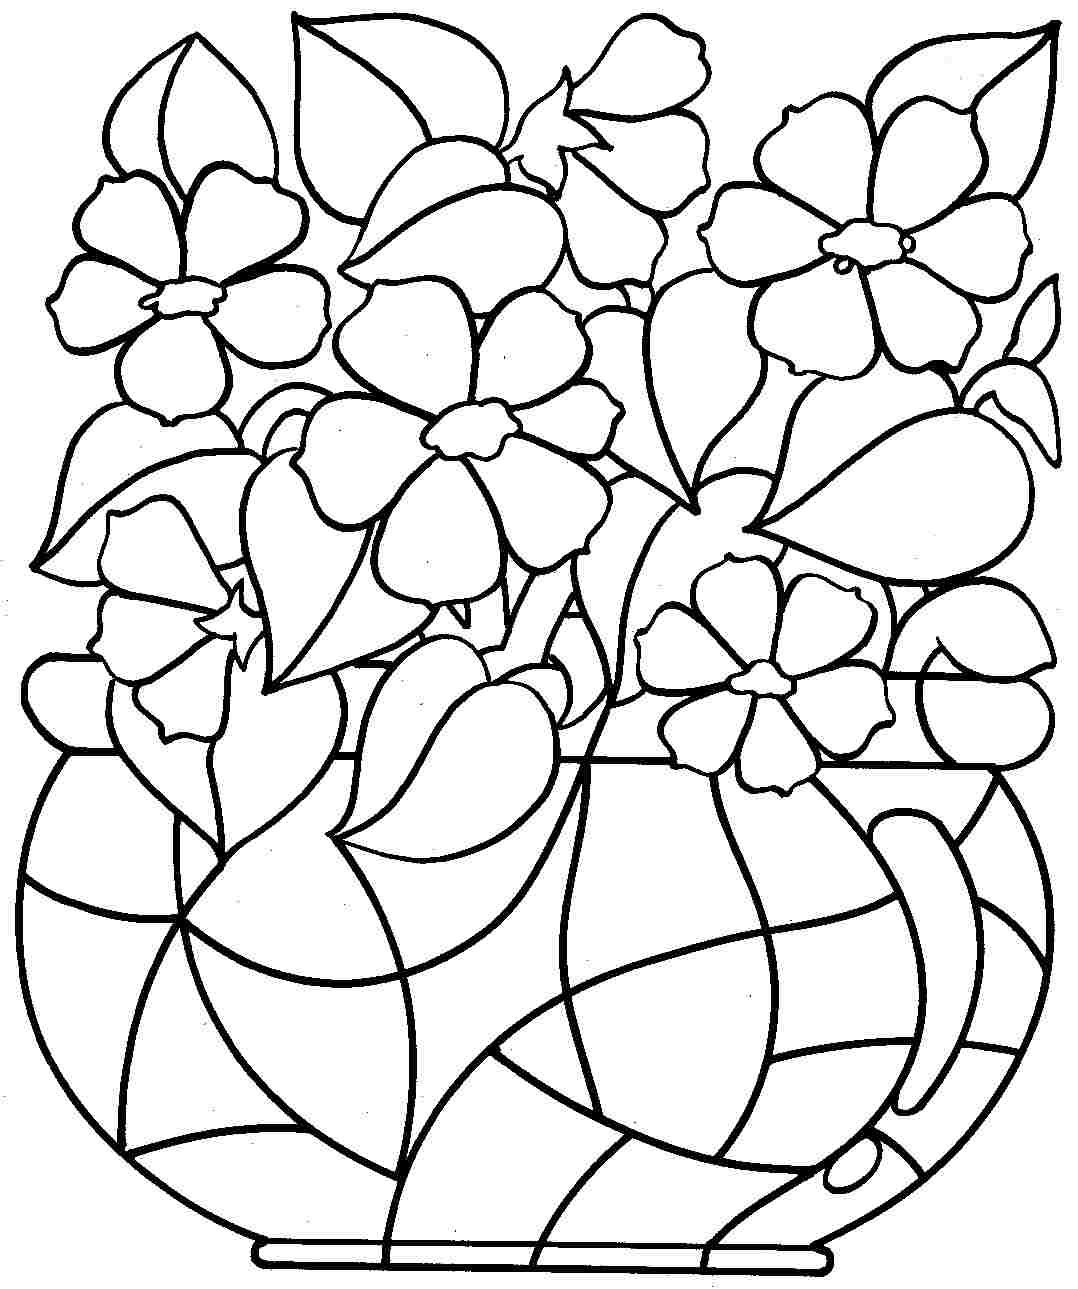 free downloadable coloring pages - free printable coloring pages of flowers for kids